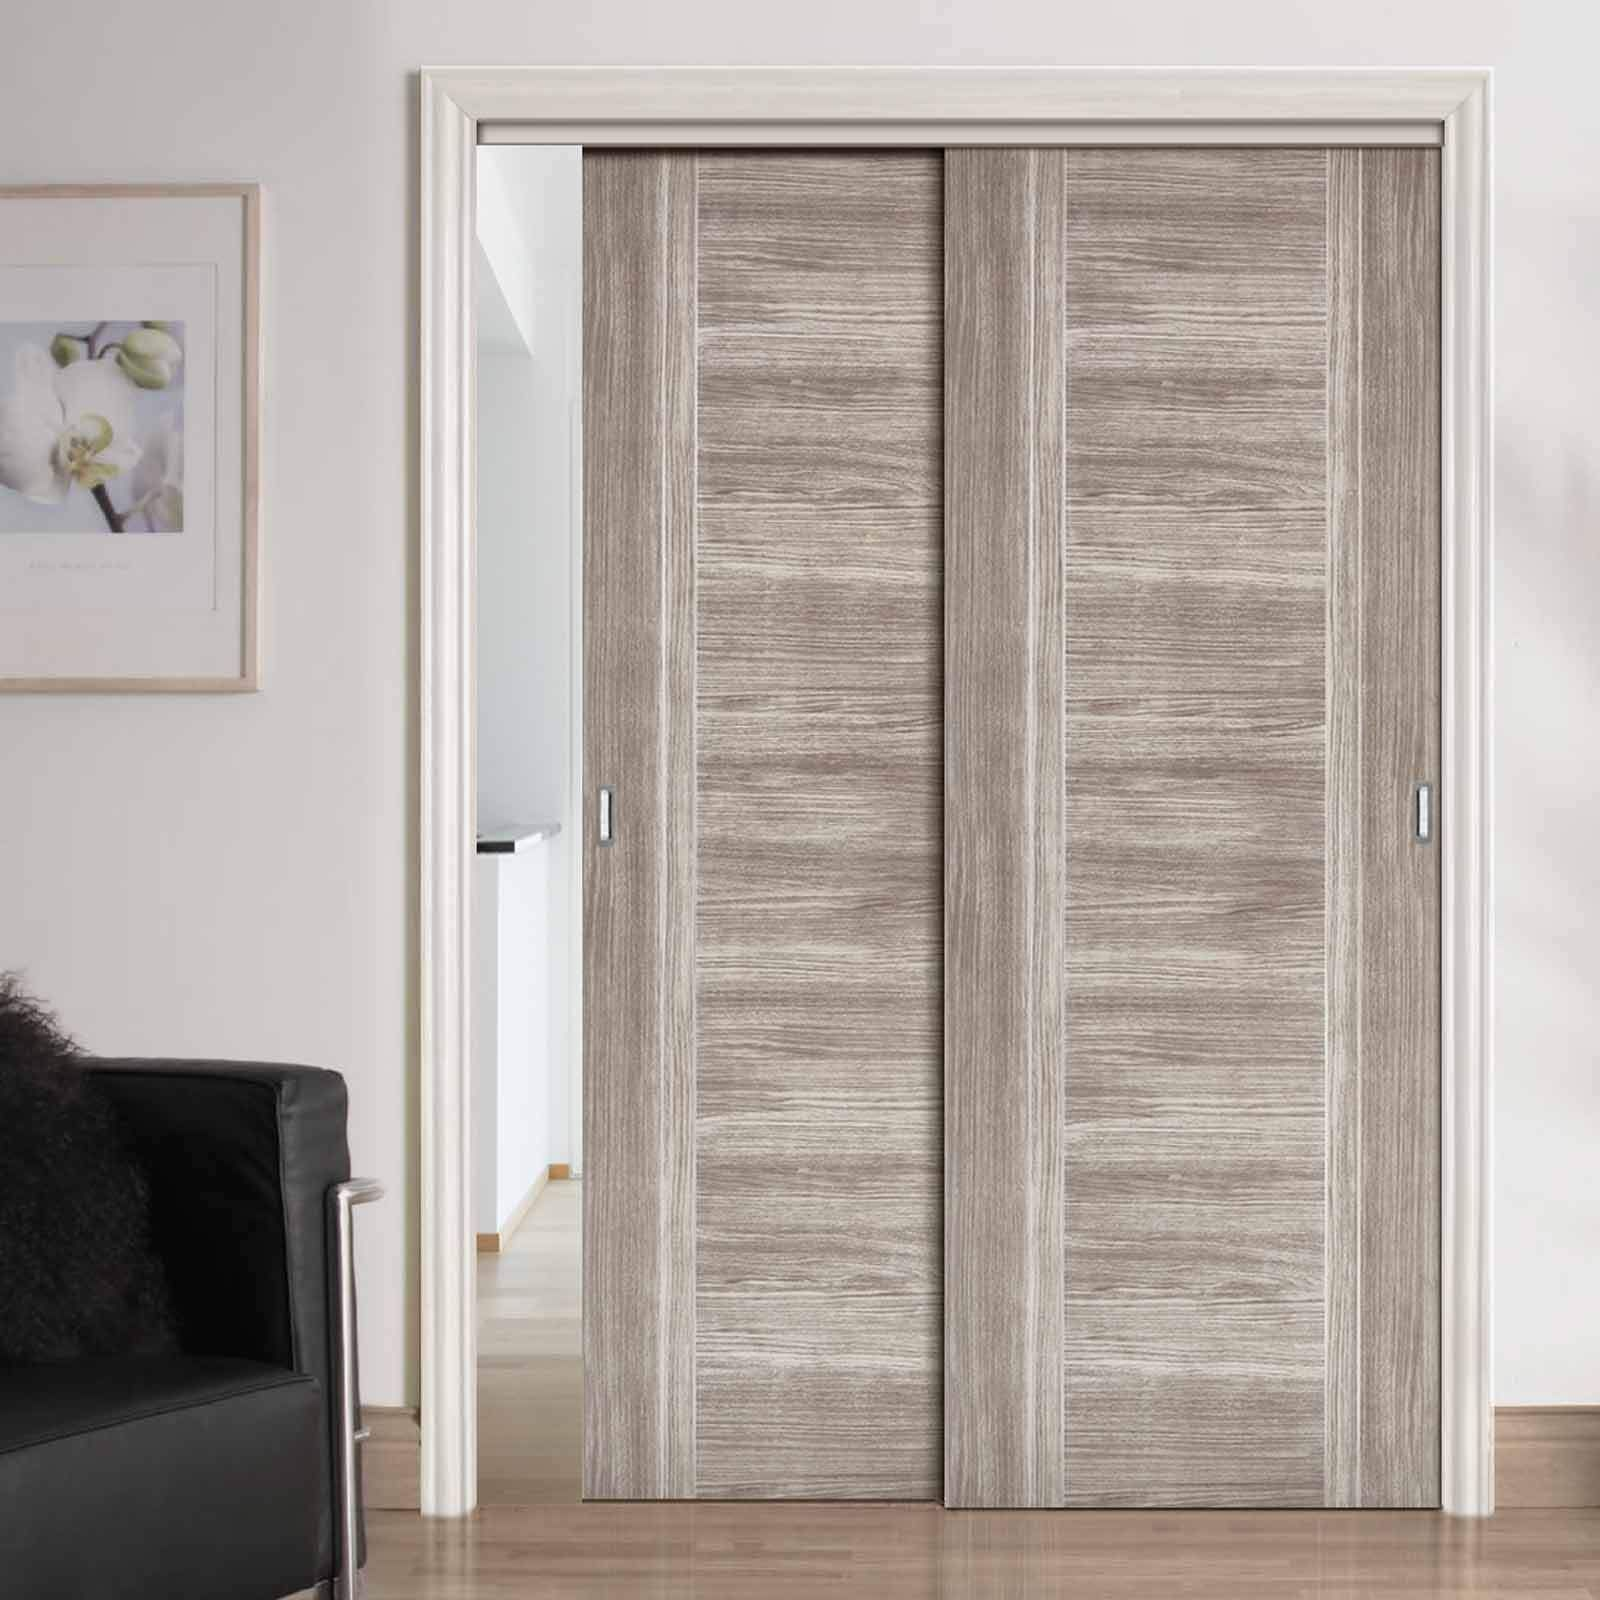 Two Sliding Doors And Frame Kit Laminate Light Grey Ottawa Door Prefinished Greydoors Slidingd Sliding Wardrobe Doors Sliding Wardrobe Wardrobe Doors